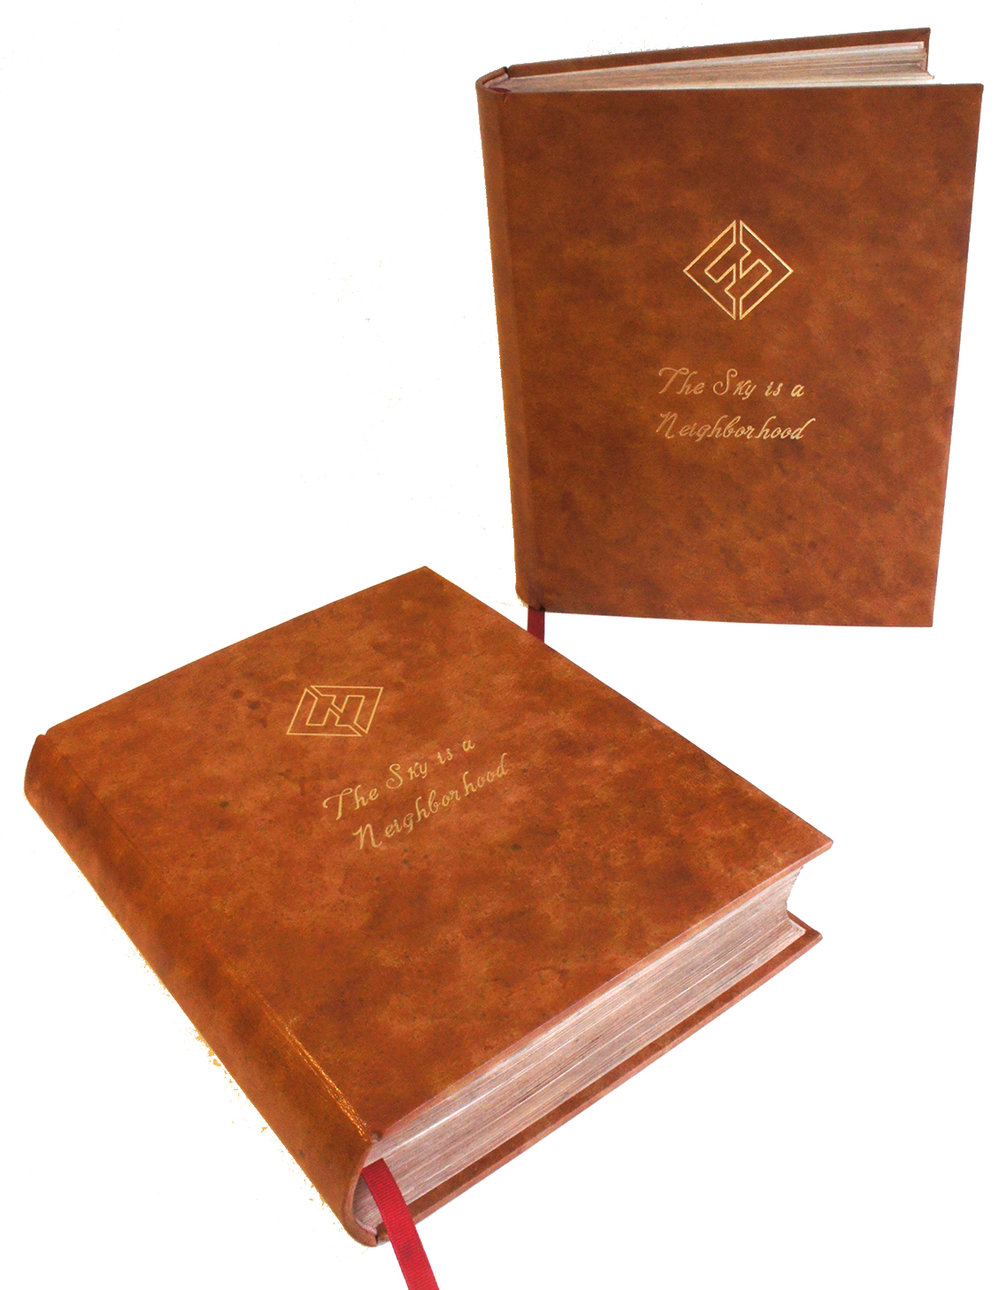 full leather binding